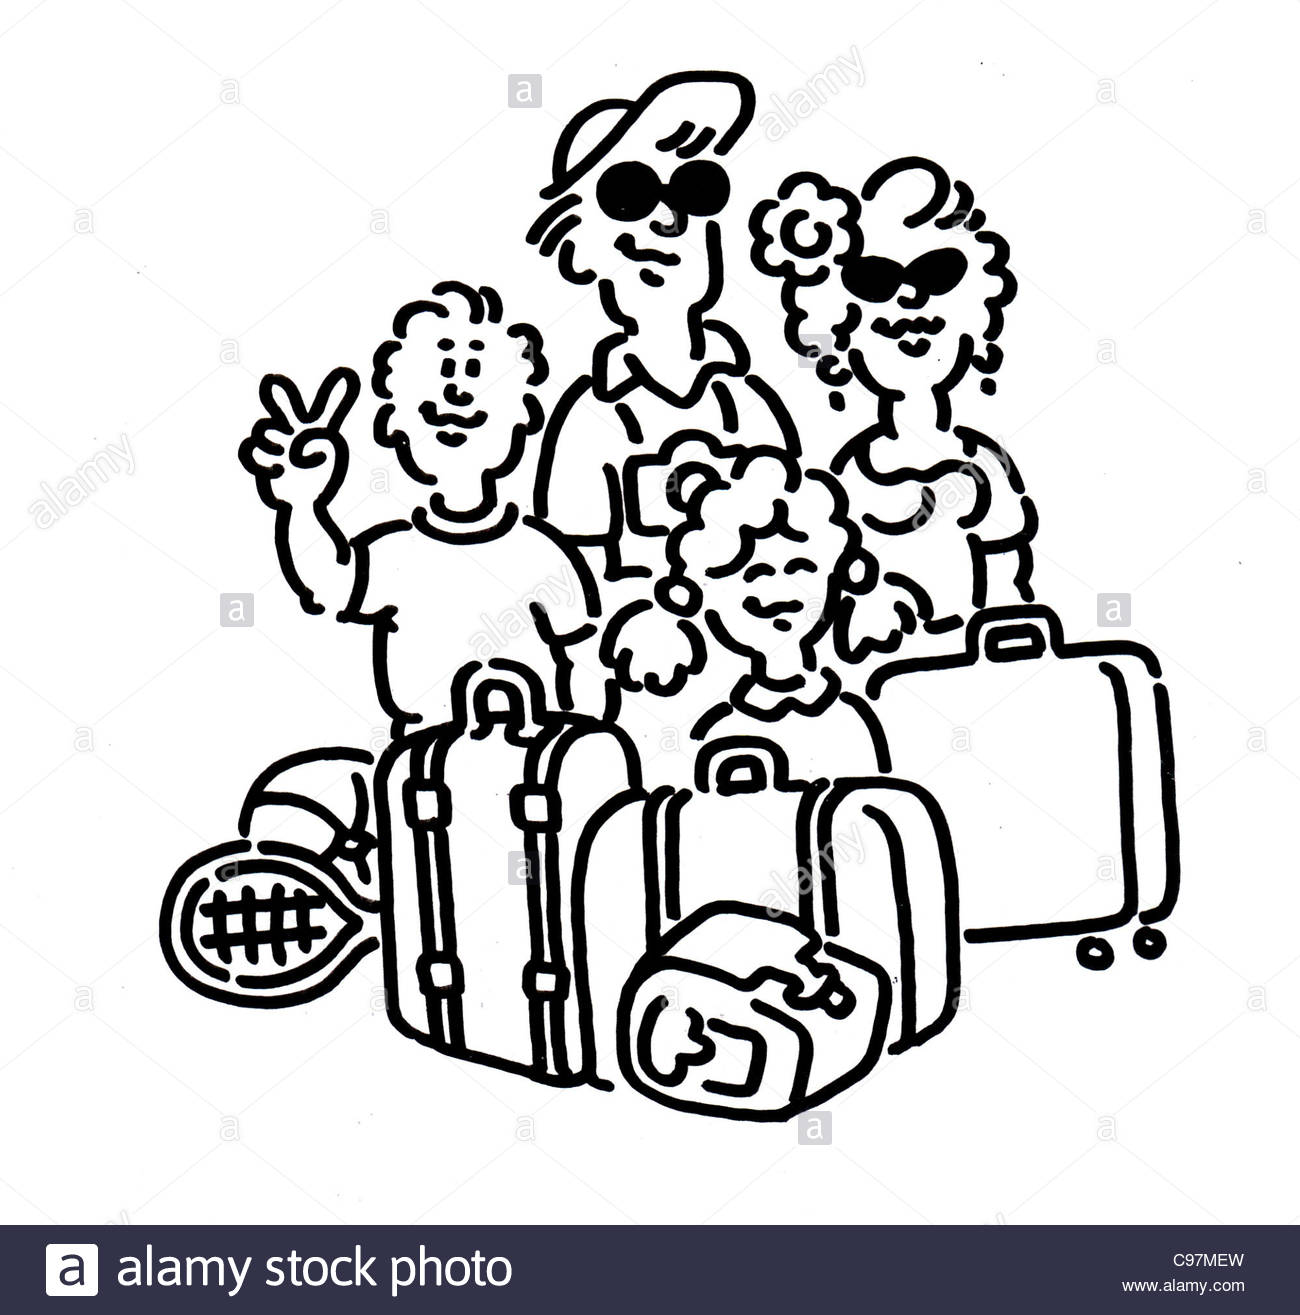 Traveling clipart black and white clipart library stock Travel Clipart Black And White (97+ images in Collection) Page 1 clipart library stock